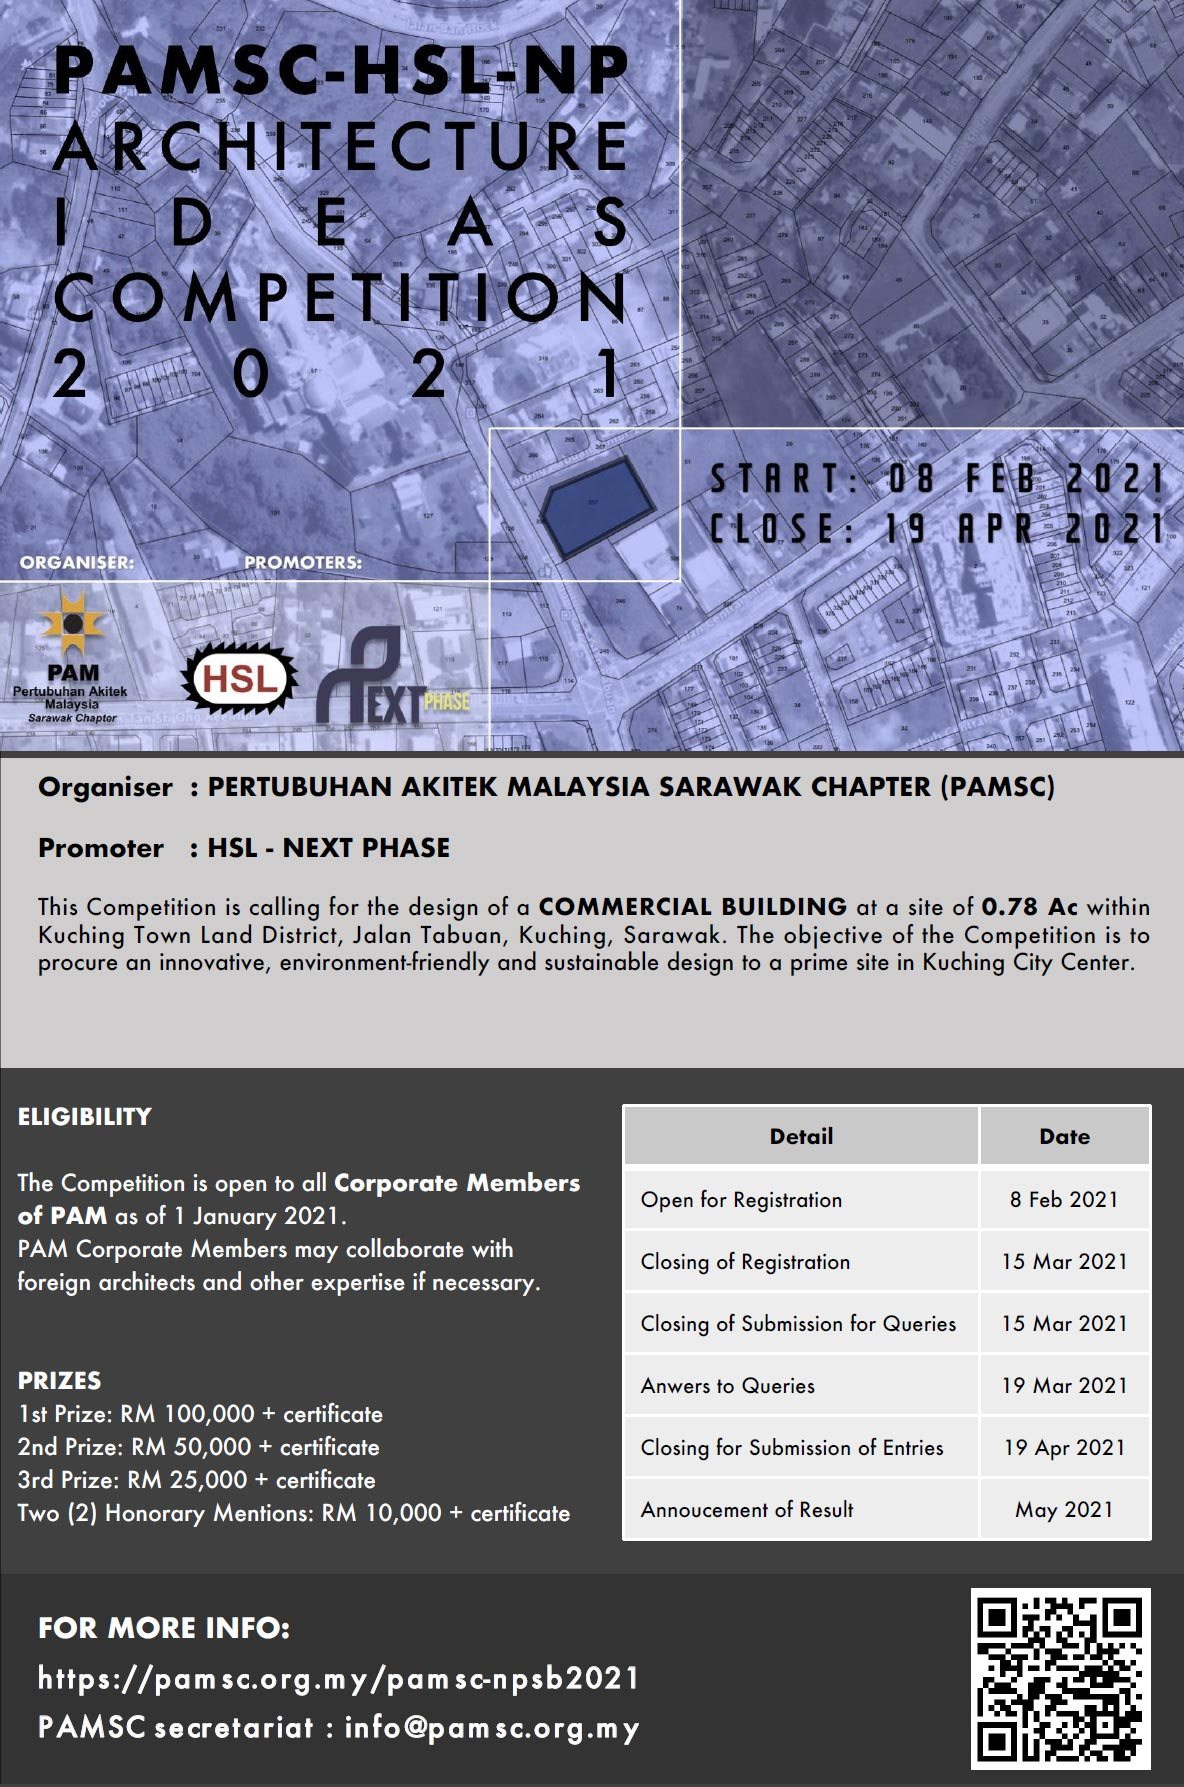 PAMSC-HSL-NP Architecture Ideas Competition 2021